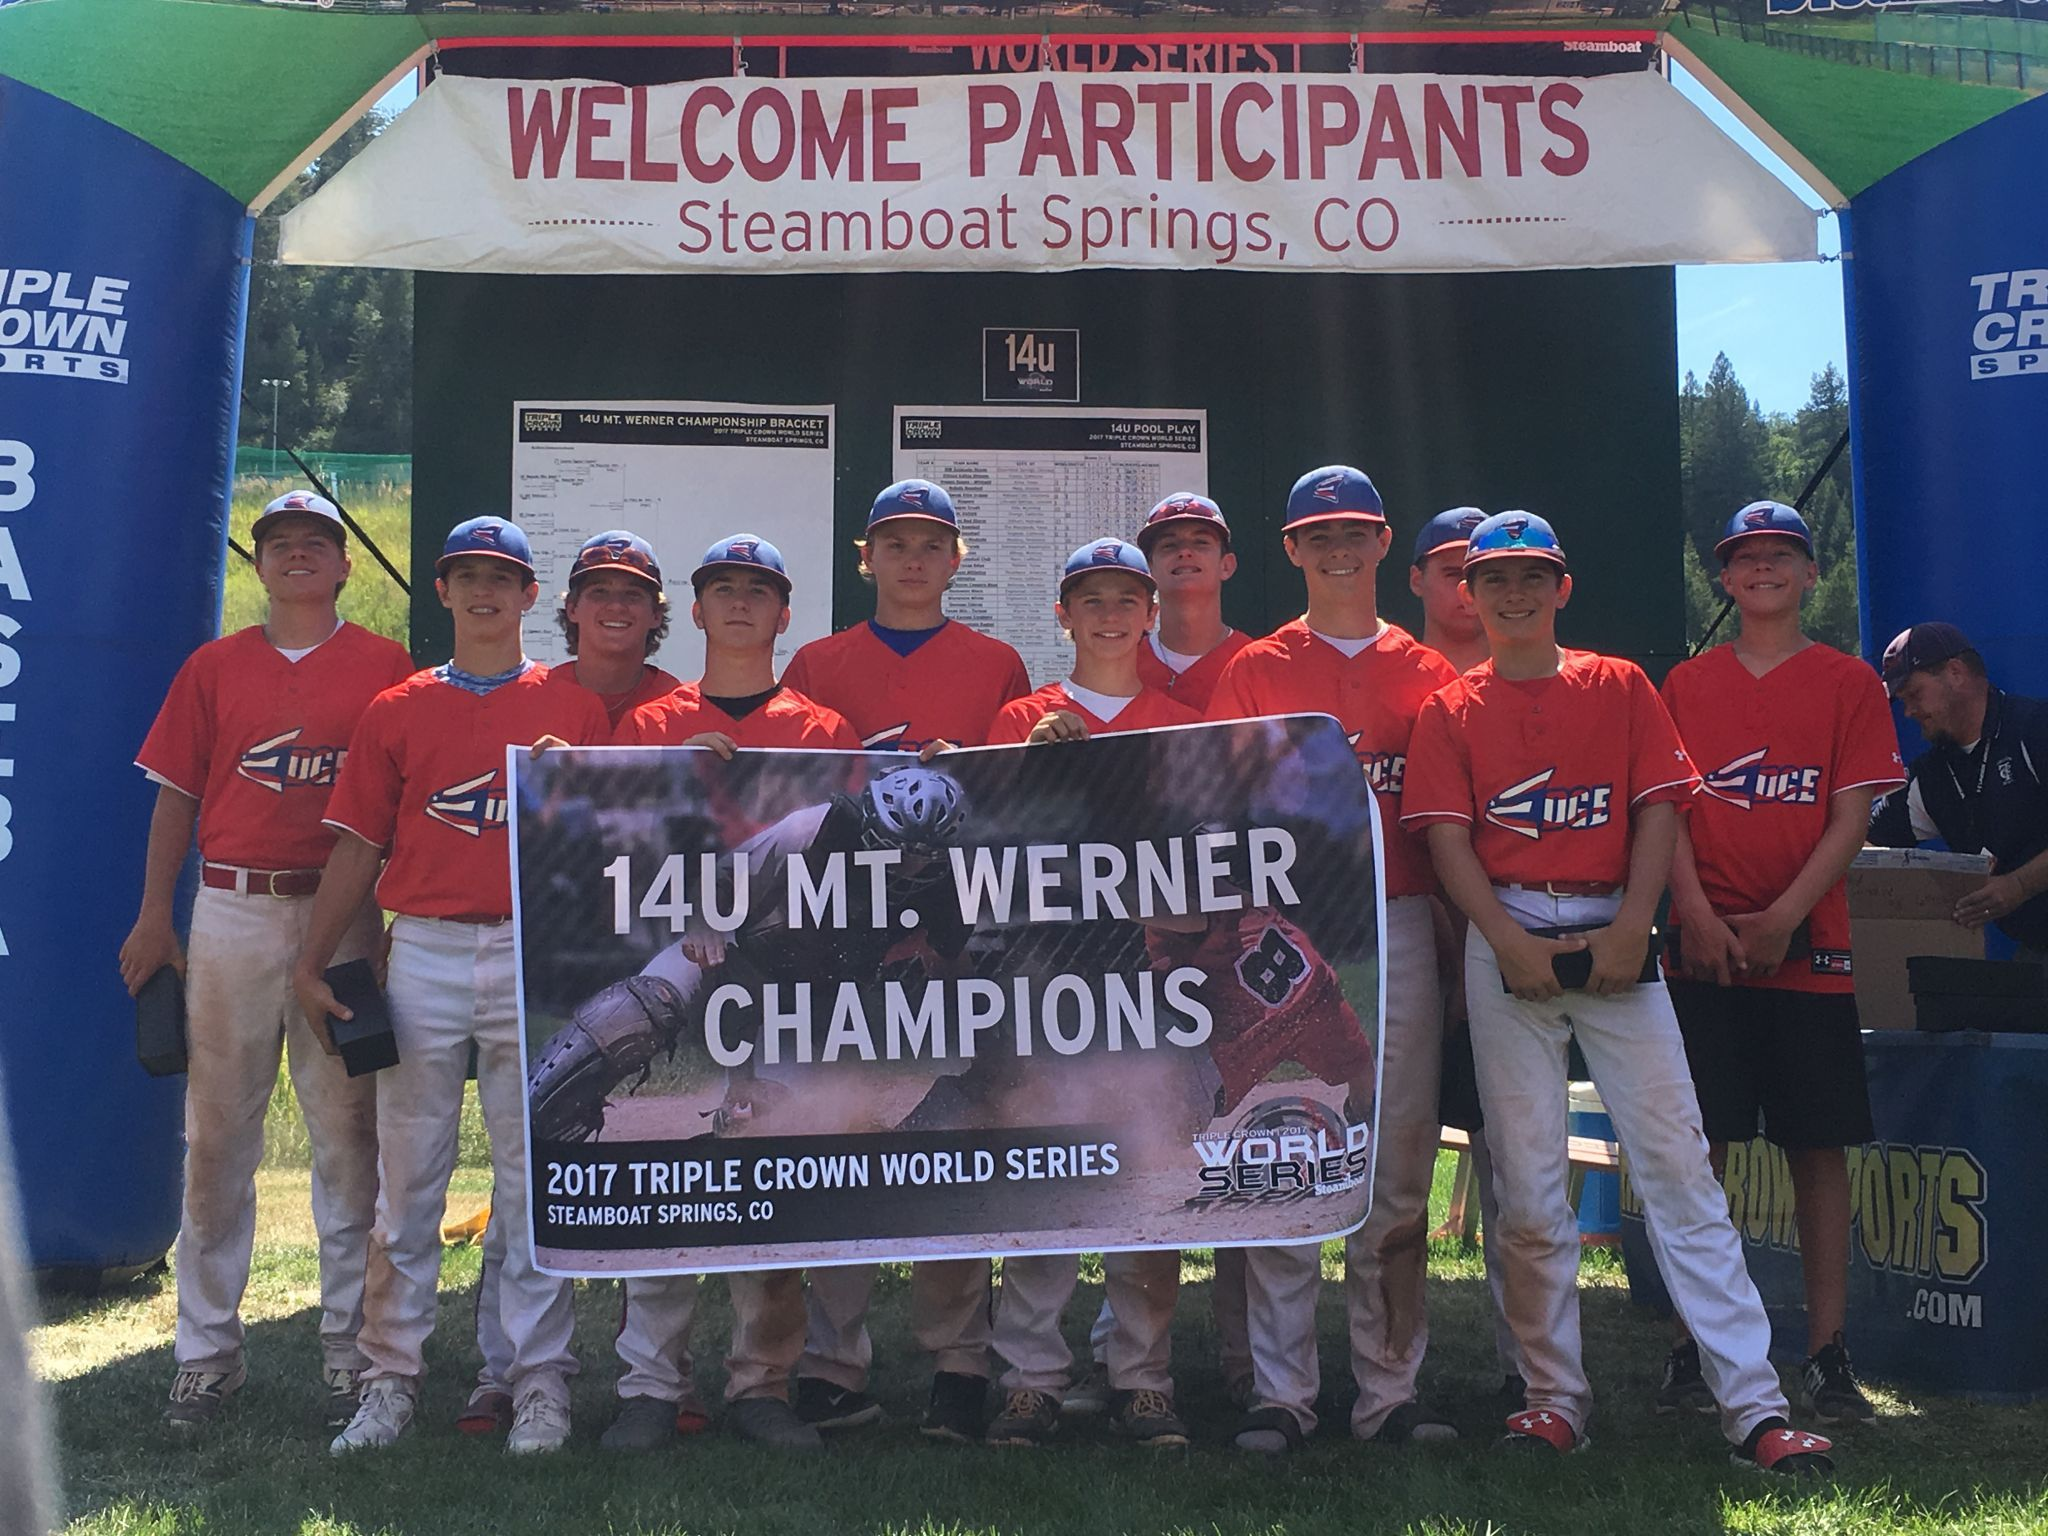 Midland S 14 Under West Texas Edge Baseball Team Won The Triple Crown World Series Over The Weekend Youth Sports Augusta National Golf Club Triple Crown